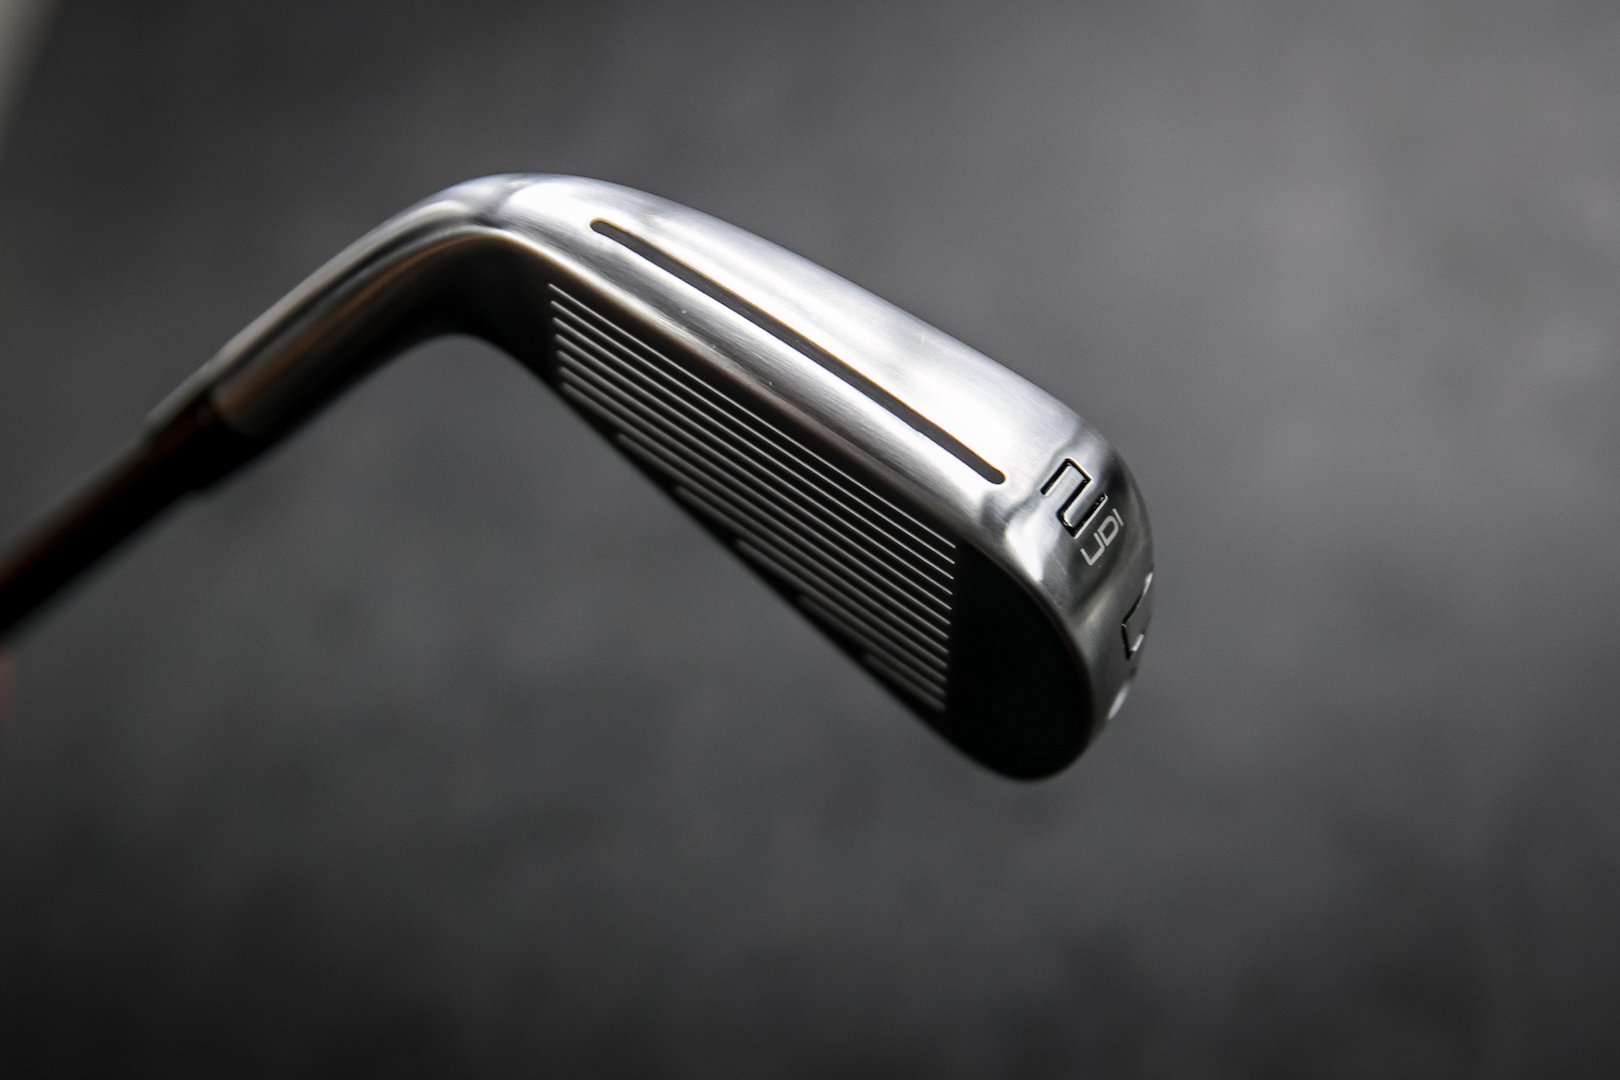 TaylorMade Golf Introduces P790 UDI irons